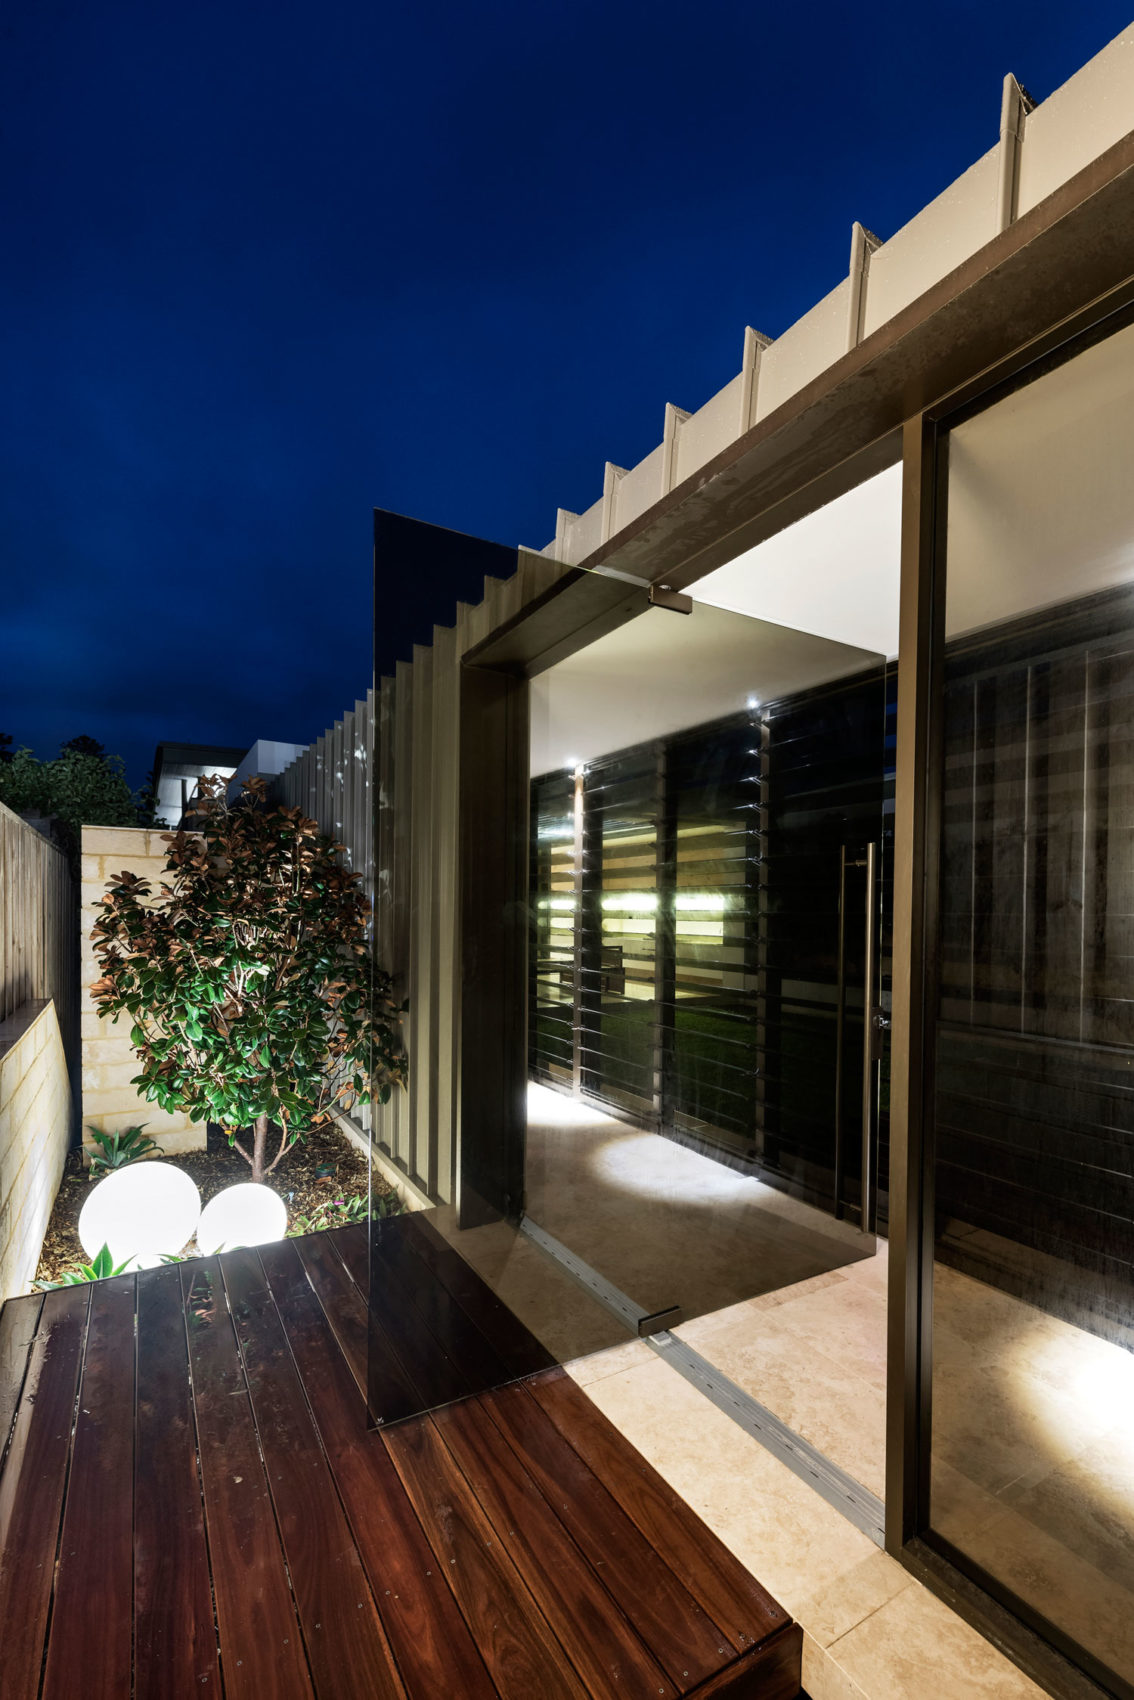 Chamberlain Street by Weststyle Design & Development (39)